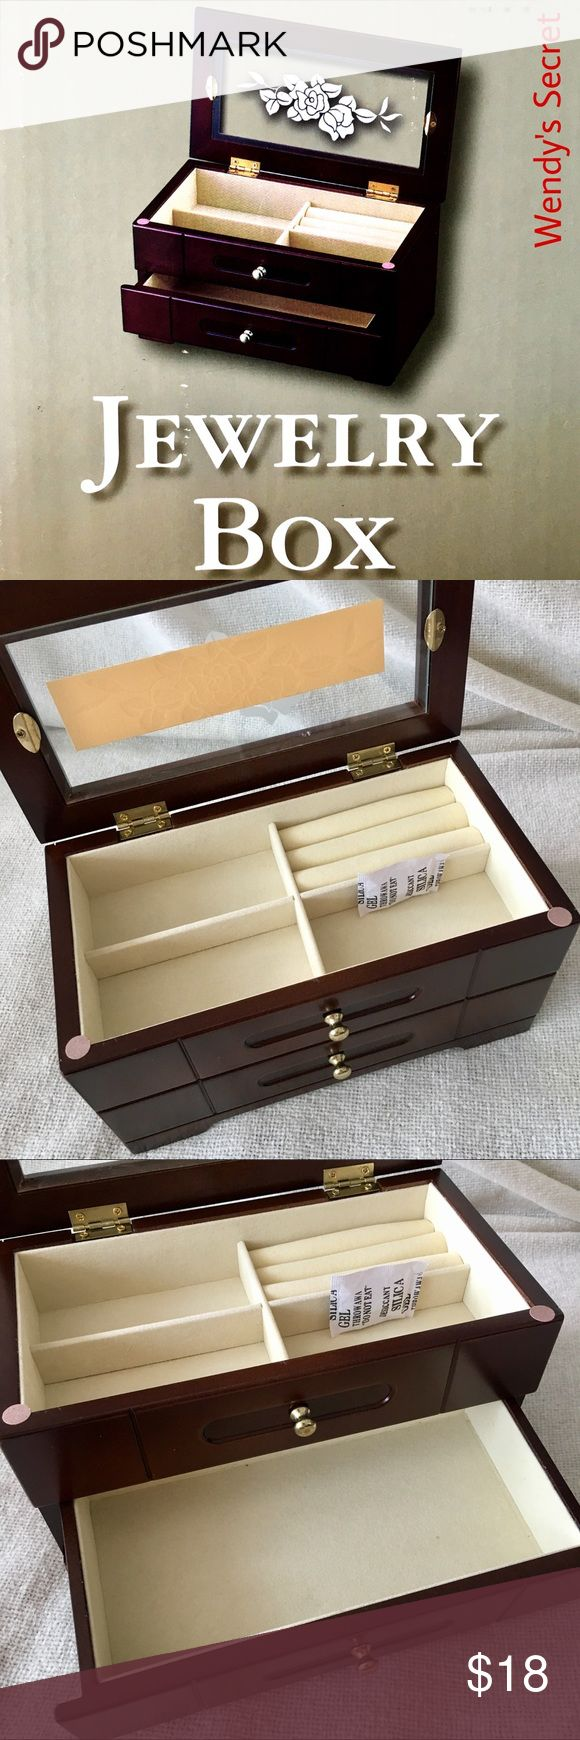 """🆕 Walnut Jewelry Box New in box Walnut Jewelry Box. An elegant jewelry box keeps your smallest treasures organized. Hinged top features a glass inset with an etched floral design. Felt lined interior equipped with 4 rectangular compartments for your earrings, pendants & rings. Goldtone pull opens a bottom drawer to provide a bigger space for your bracelets & brooches. Features: -Hinged lid -Glass top -1 drawer -4 divided compartments -3 rings rolls -Felt lining Dimensions: 9"""" W x 4 3/4"""" H x…"""